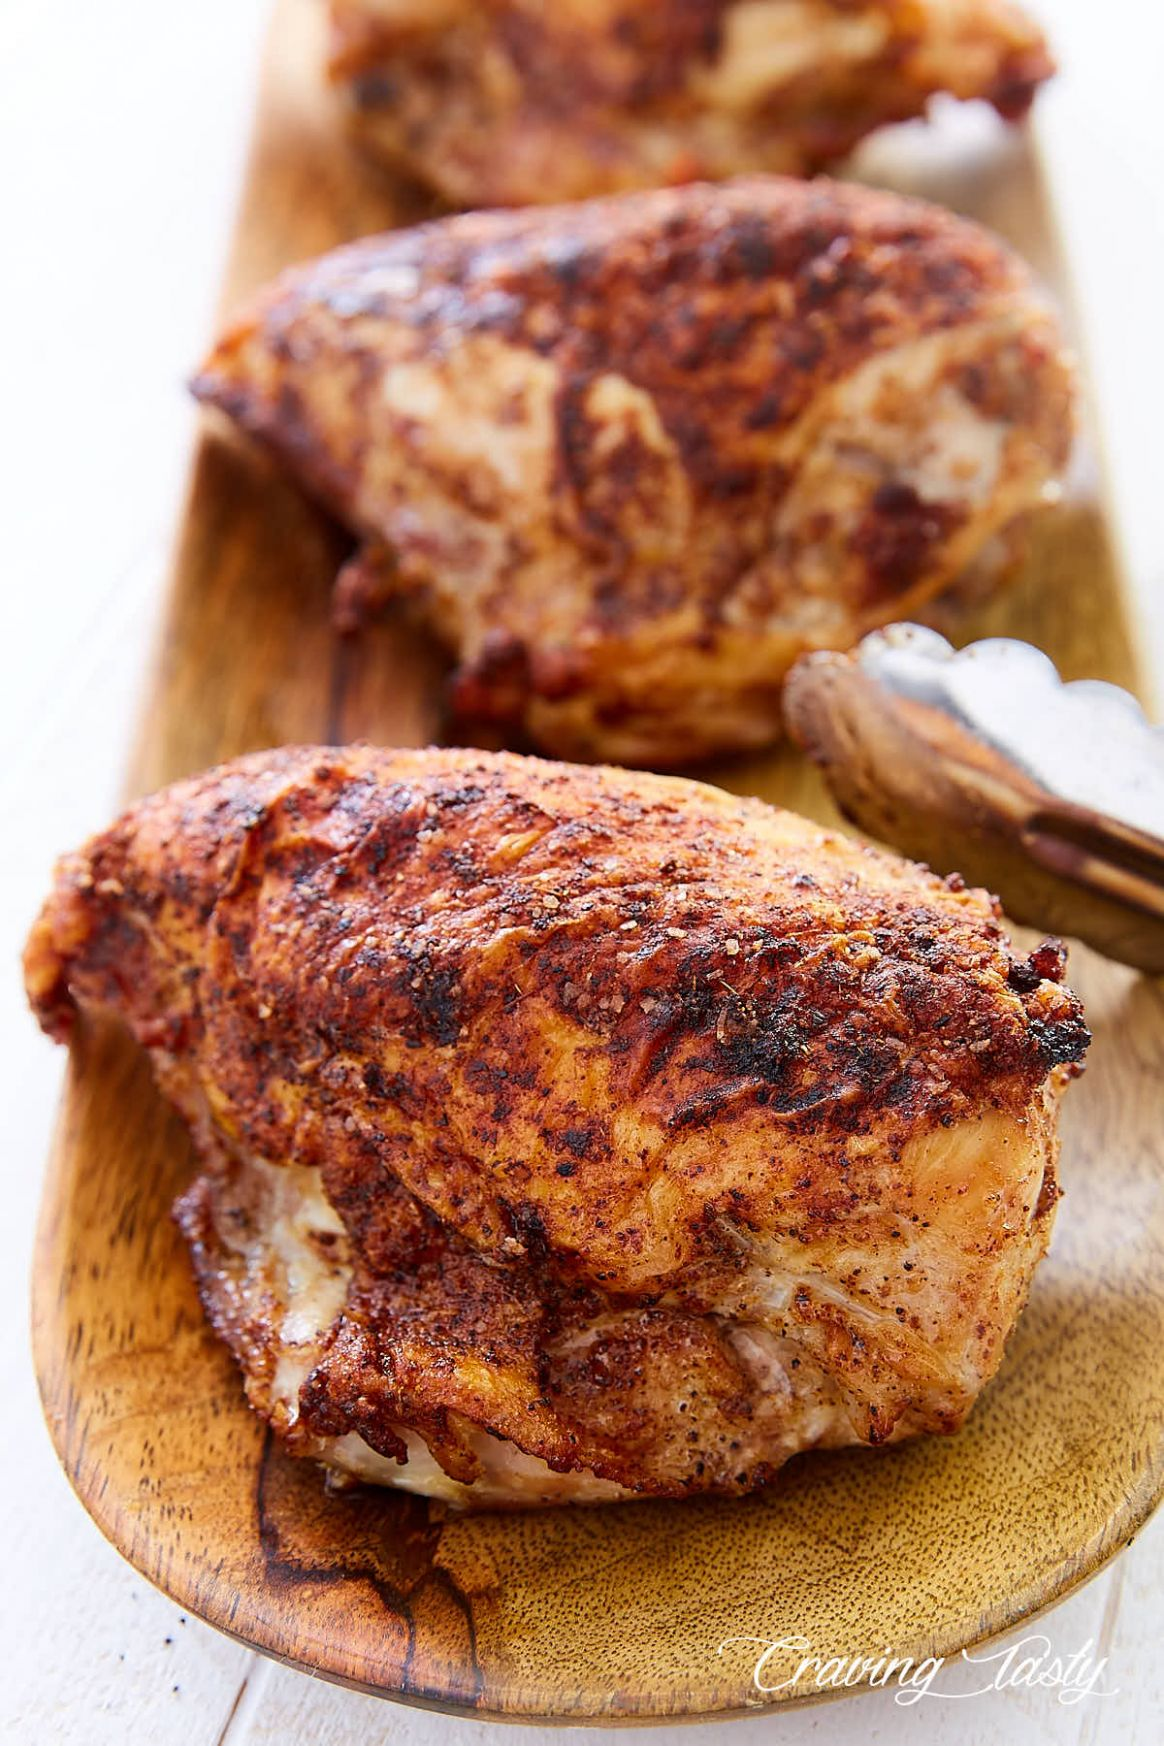 Crispy Oven Roasted Bone-In Chicken Breast - Recipes Chicken Breast With Ribs Attached